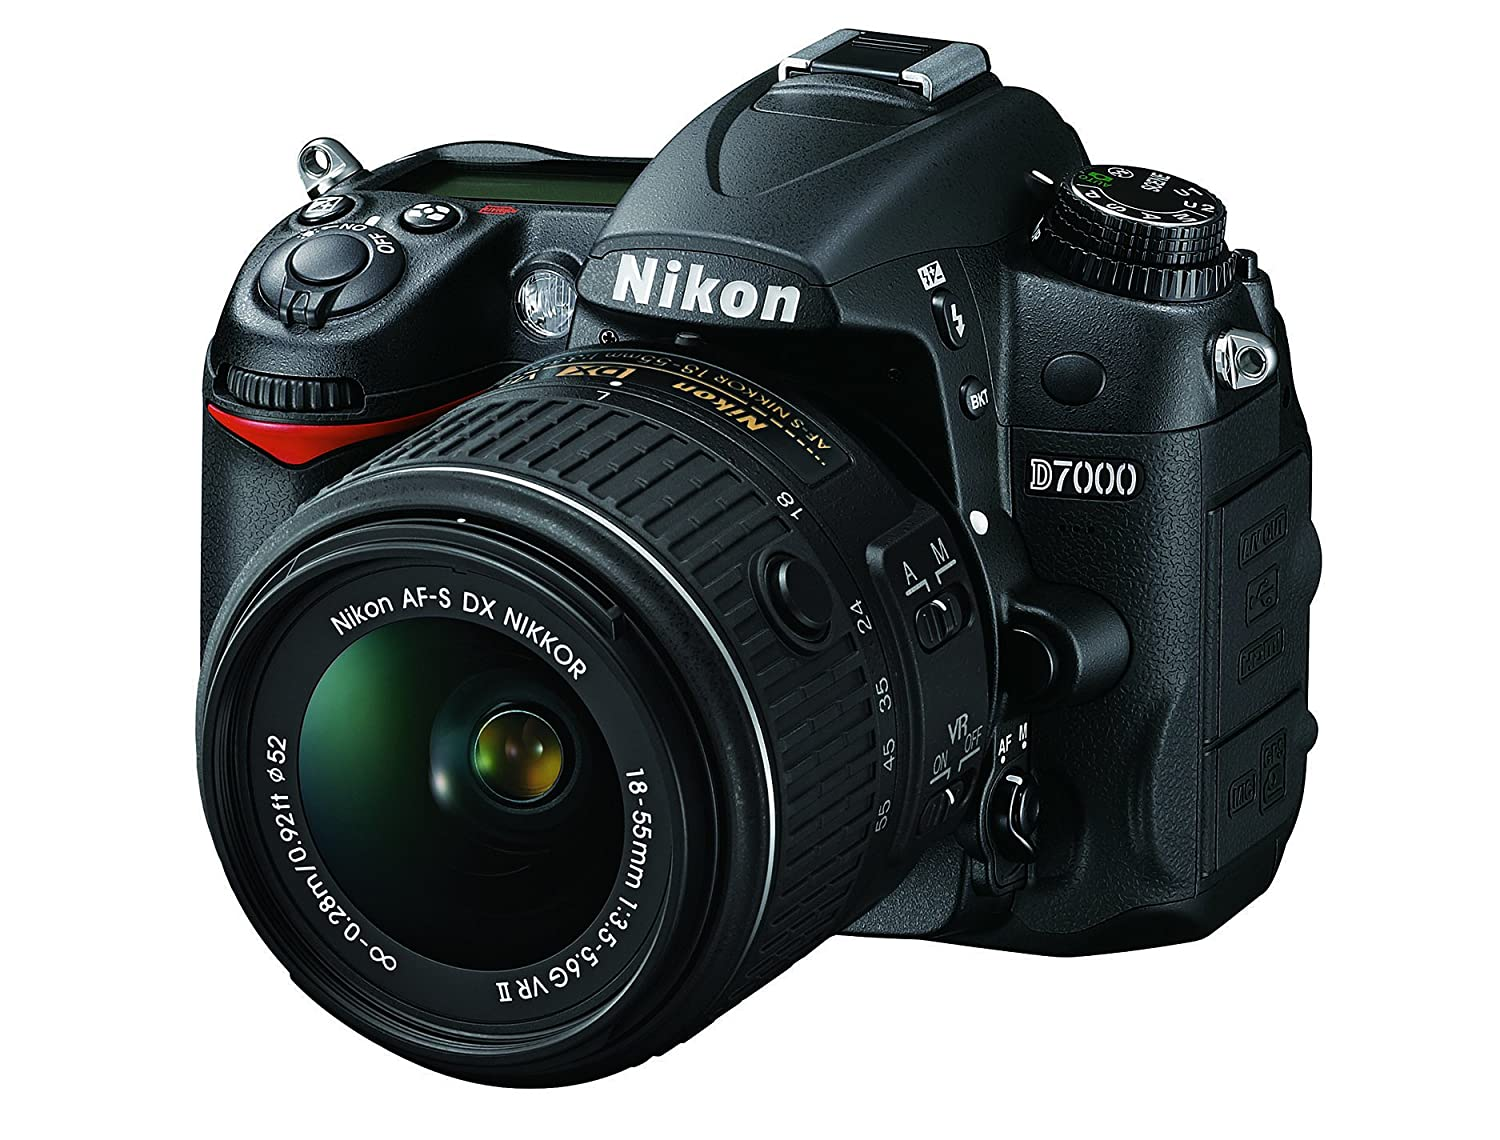 Camera High Megapixel Dslr Camera amazon com nikon d7000 16 2 megapixel digital slr camera with 18 55mm lens black photo